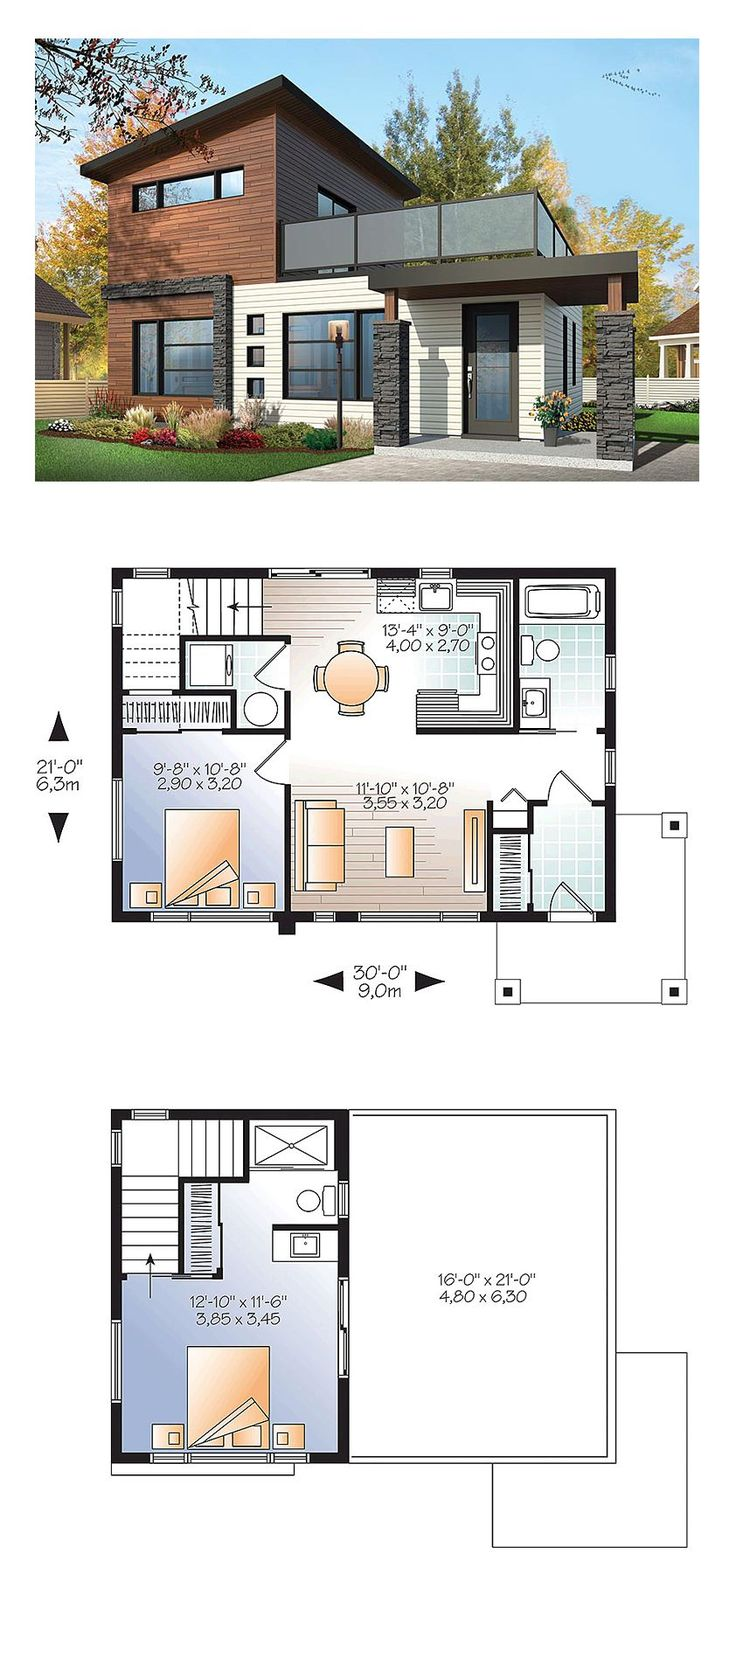 modern house plan 76461 total living area 924 sq ft 2 - Small House Blueprints 2